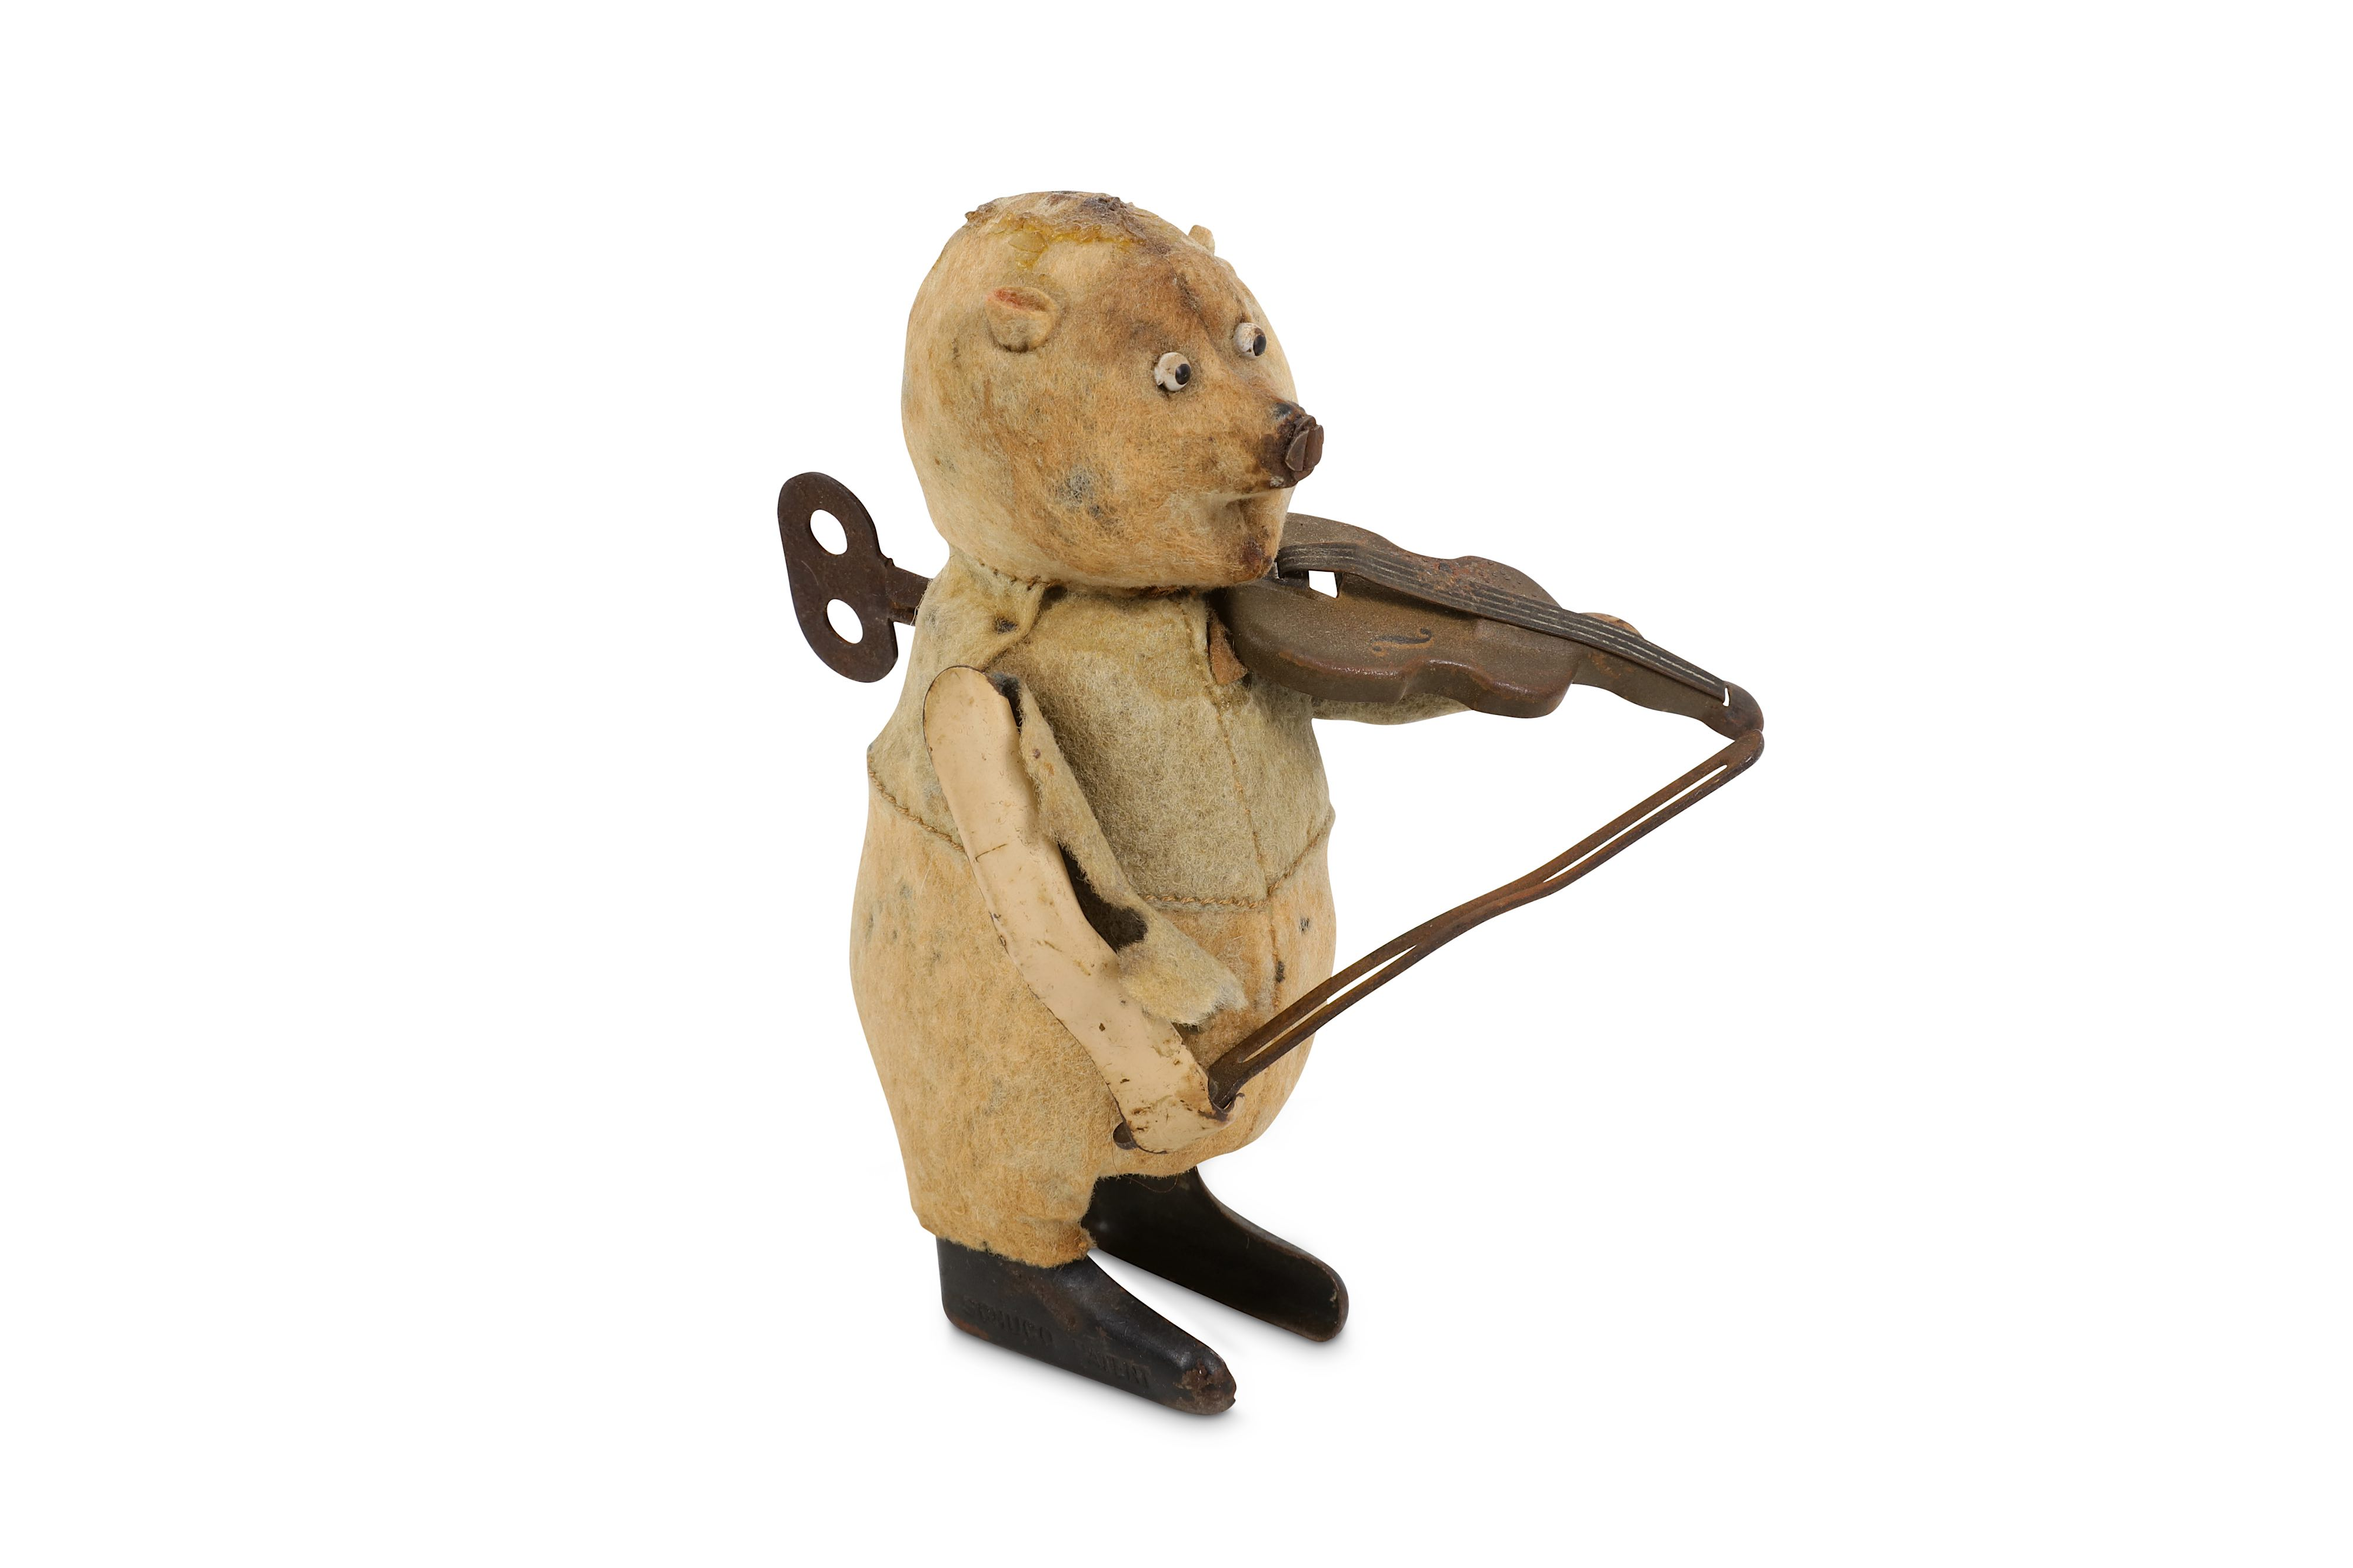 AN EARLY 20th CENTURY CLOCKWORK MUSICAL JOLLY CHIMP PLAYNG THE CYMBALS - Image 5 of 9